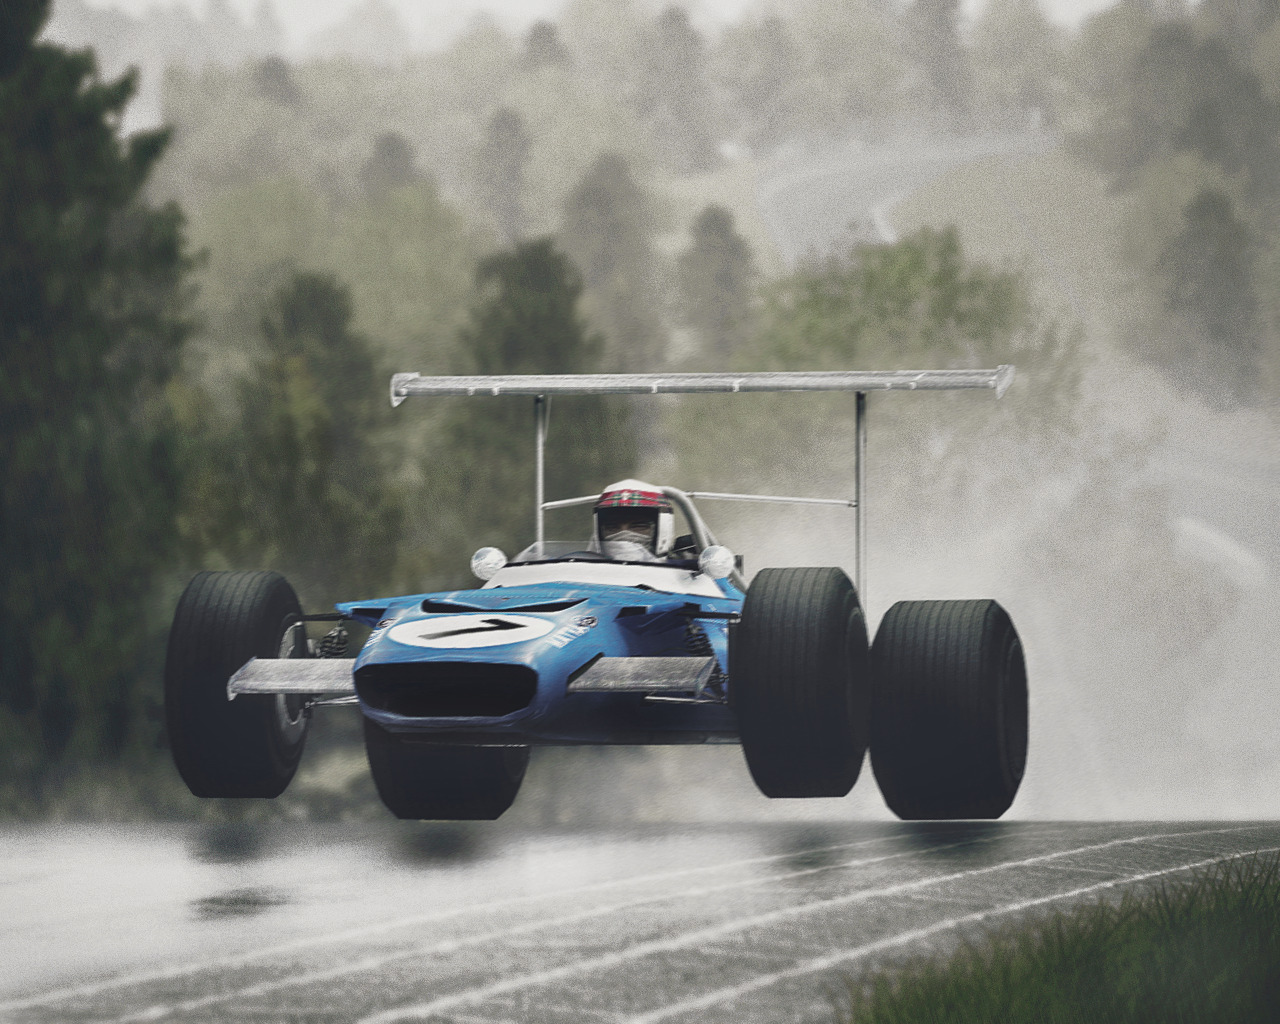 Sir Jackie Stewart - Getting air at the Nurburgring in his Matra MS-80 Cosworthfor Shyam-bze  (Okay so this is a screen shot from racing simulation rFactor, had me fooled for a minute. Thanks Automotive Porn for spotting this.)